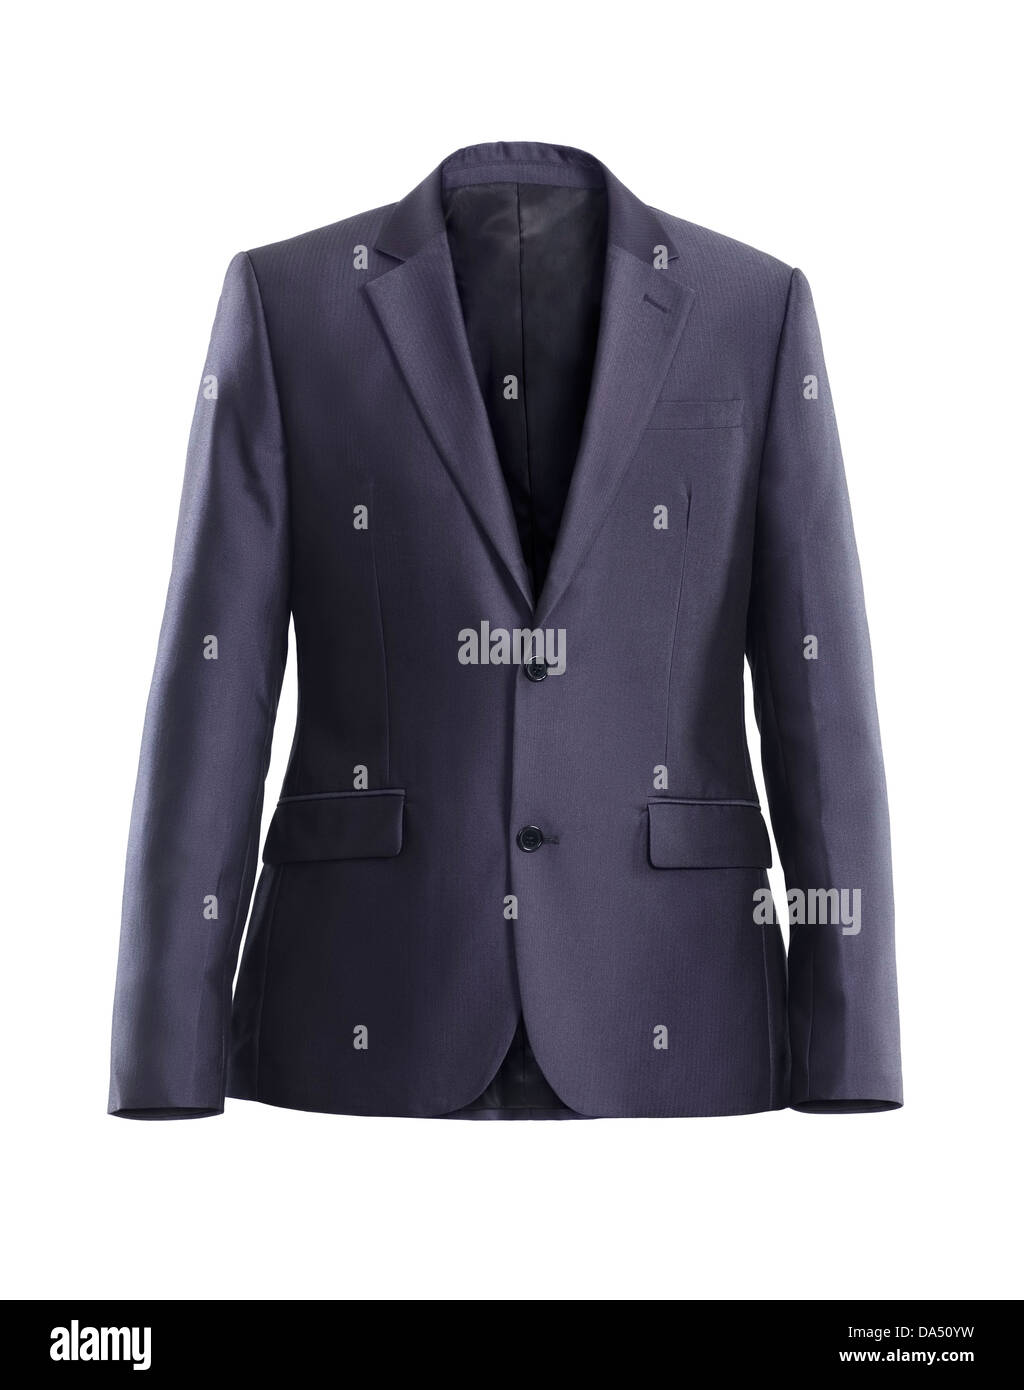 Business suit jacket, mens gray dress jacket isolated on white background - Stock Image